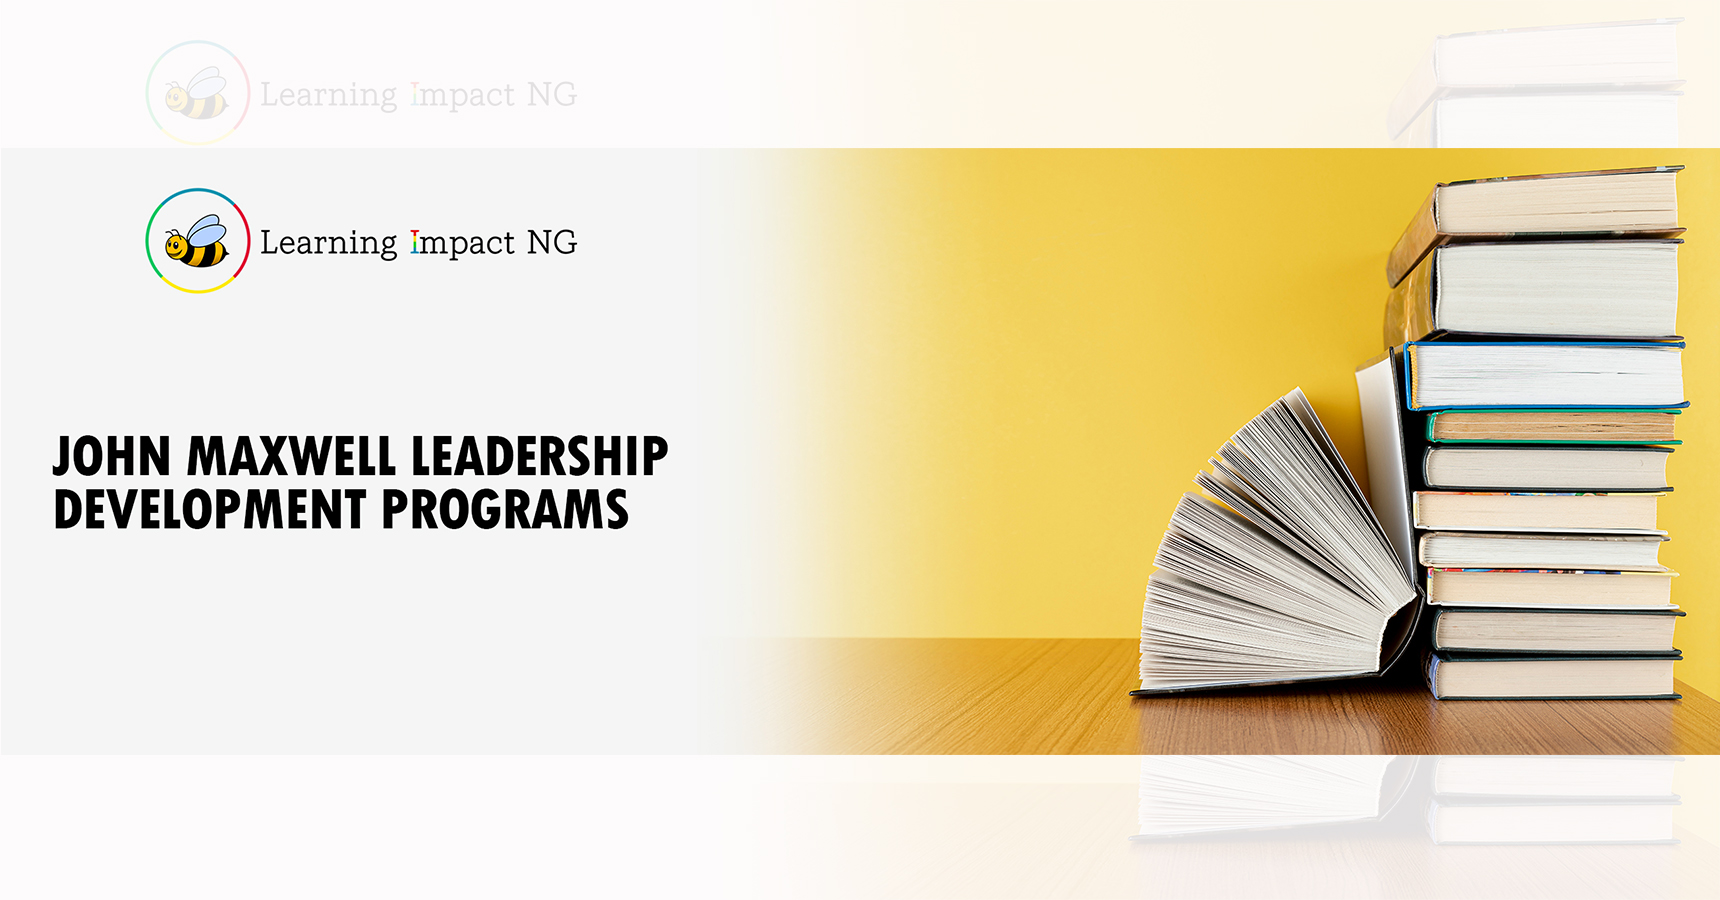 John C Maxwell's Leadership Development programs